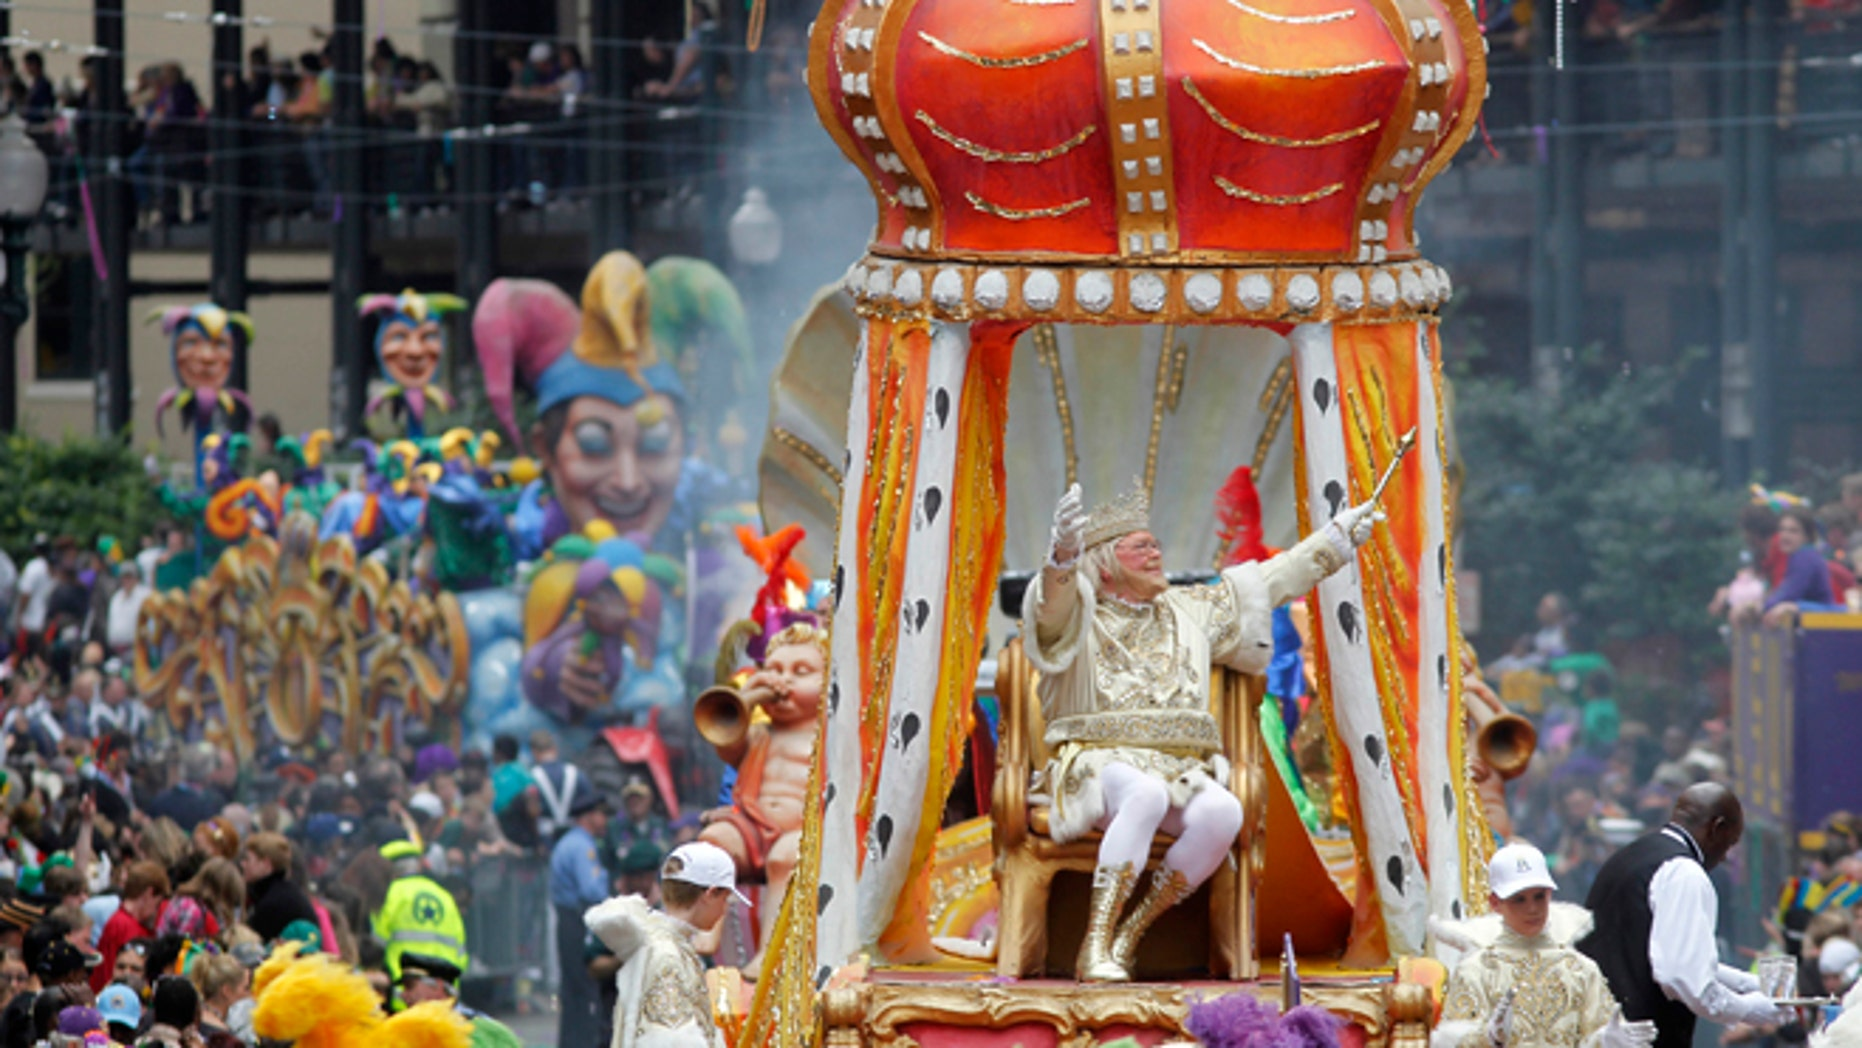 FILE - In this March 8, 2011 file photo, Rex, the King of Carnival rides in the Krewe of Rex as he arrives at Canal St. on Mardi Gras day in New Orleans.